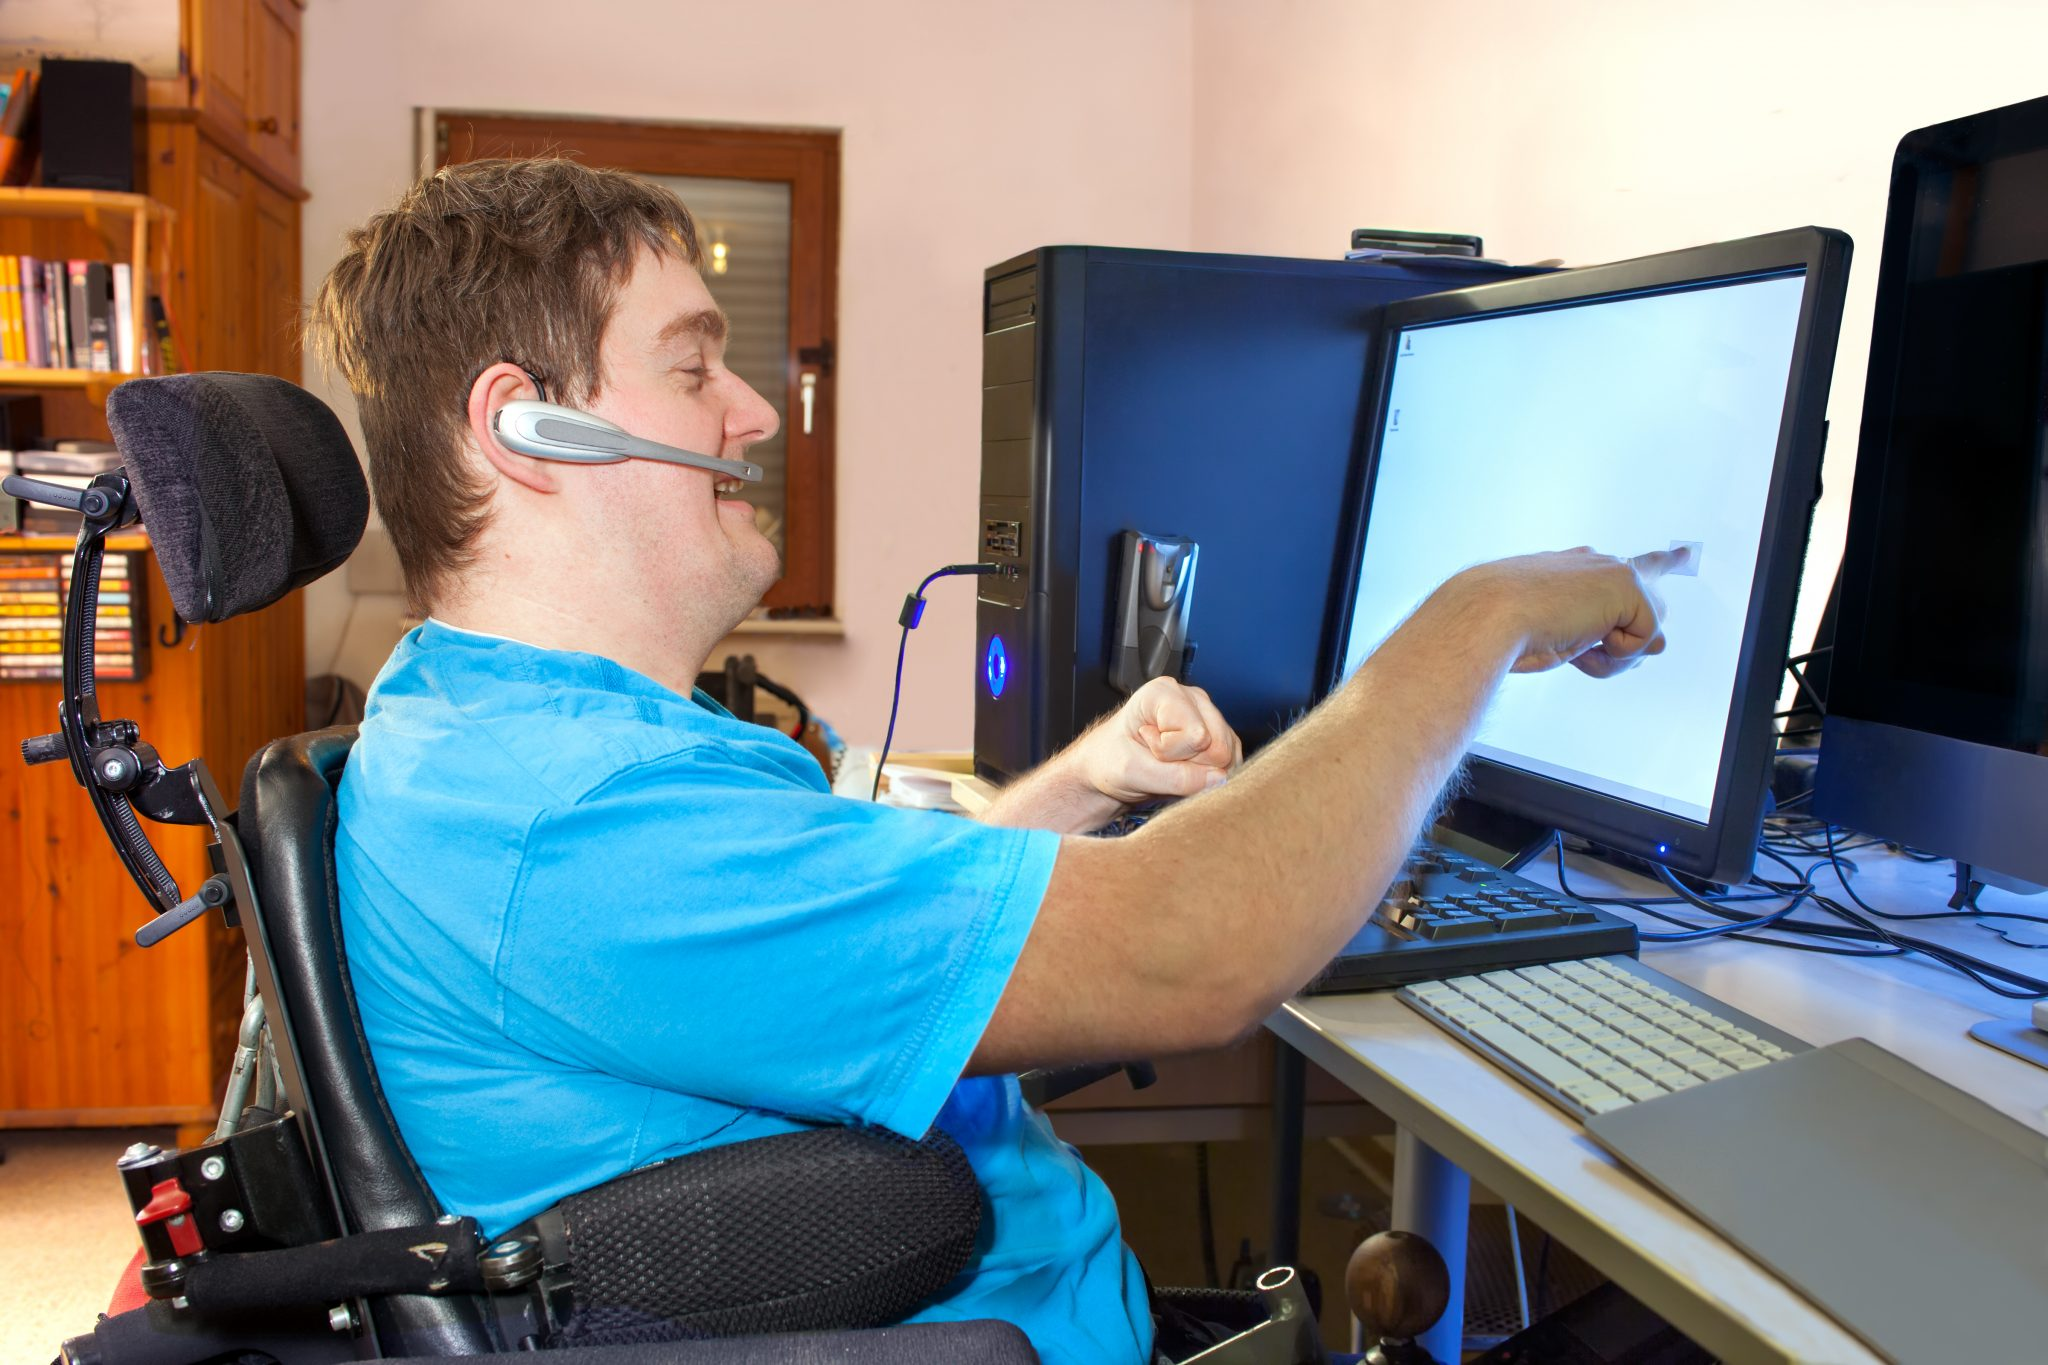 Living with disability essay